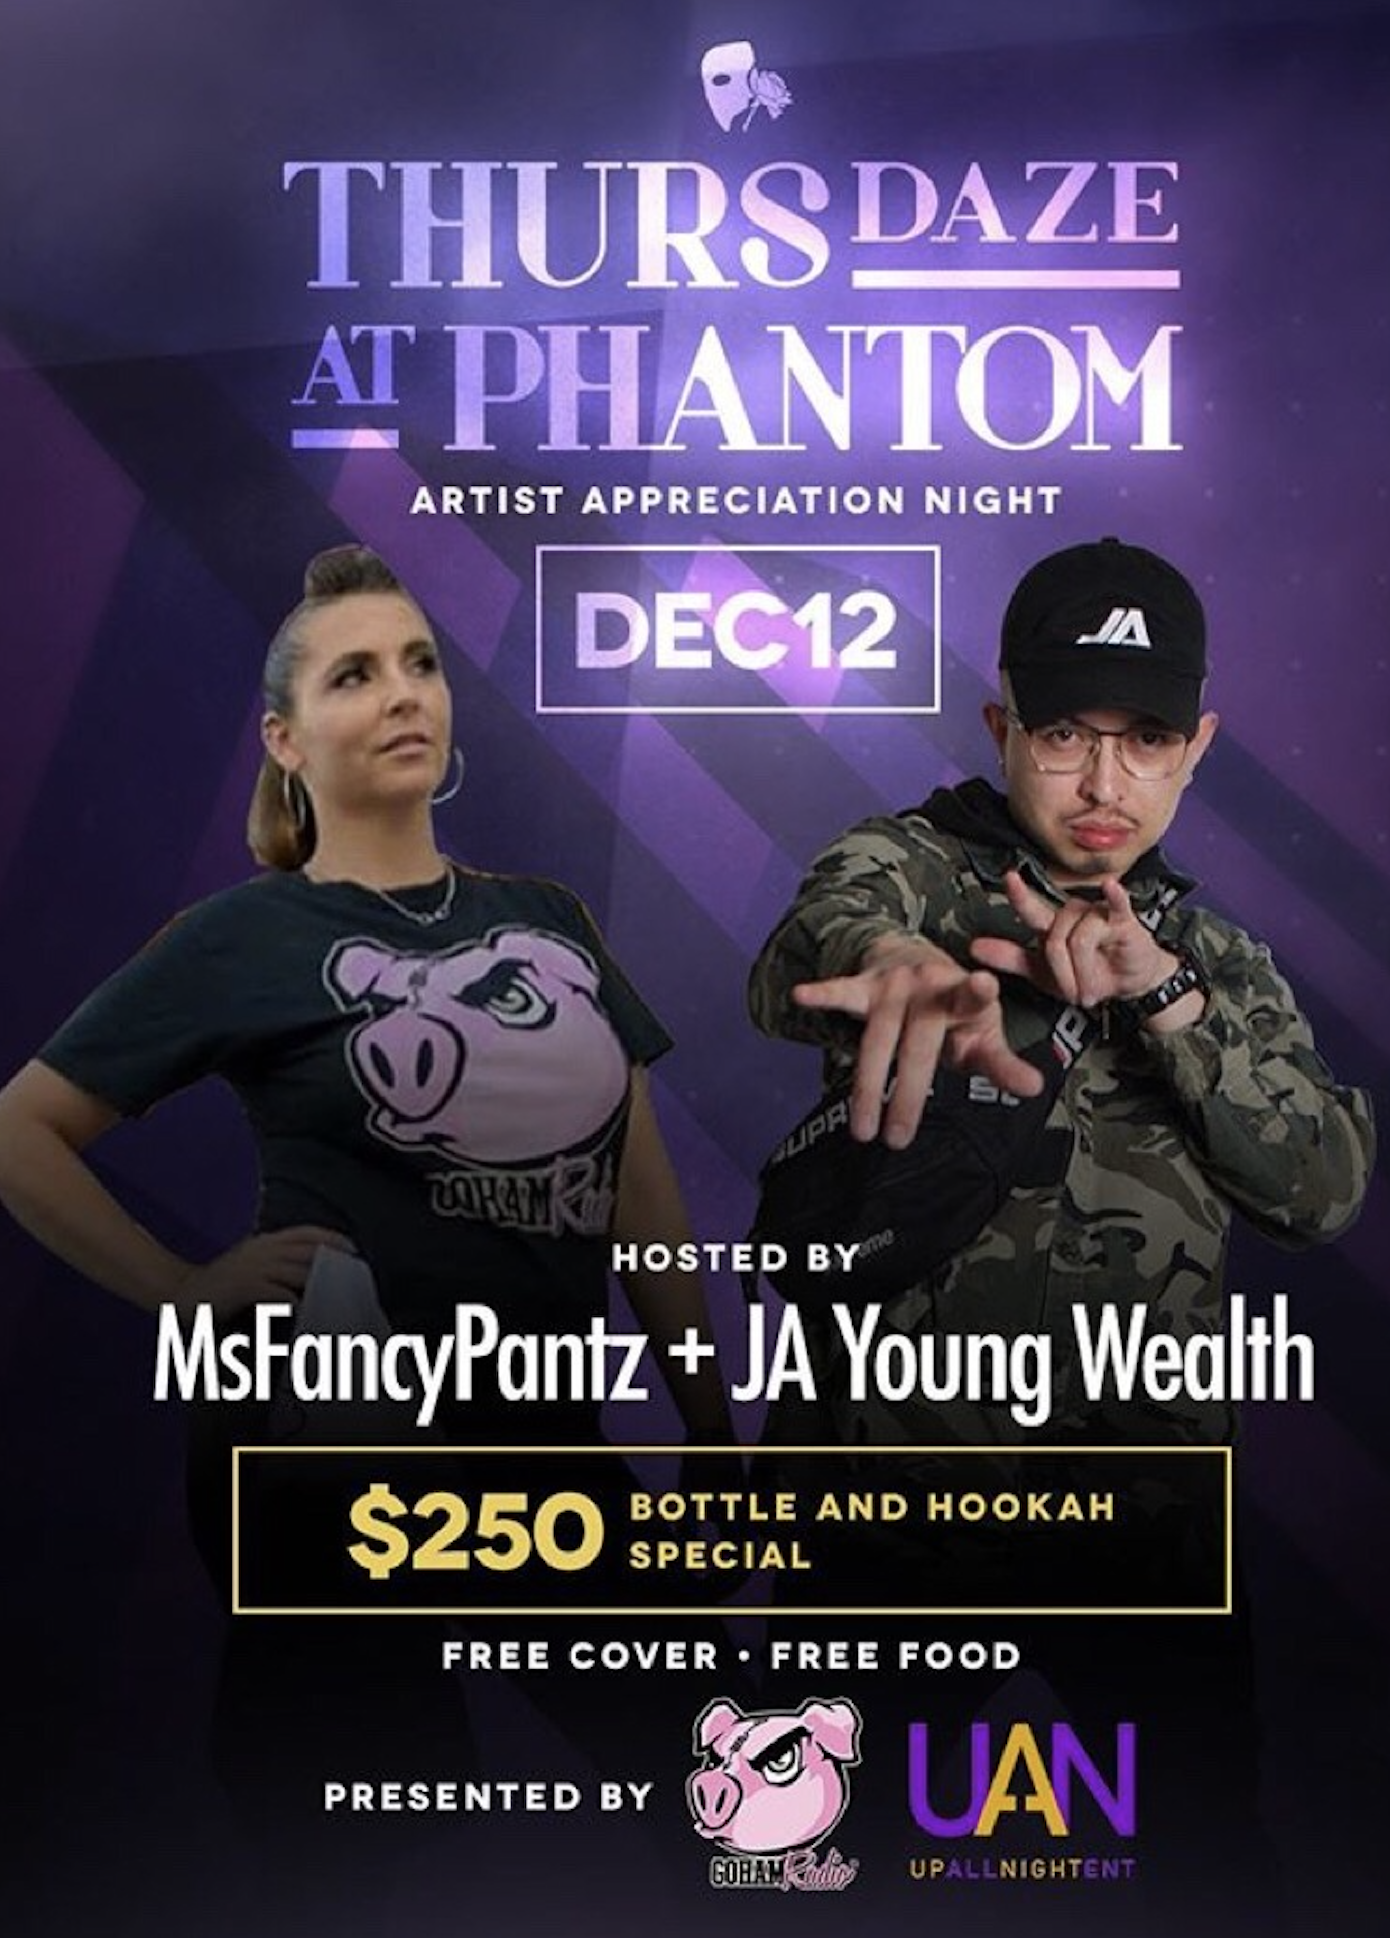 ThursDAZE at Phantom